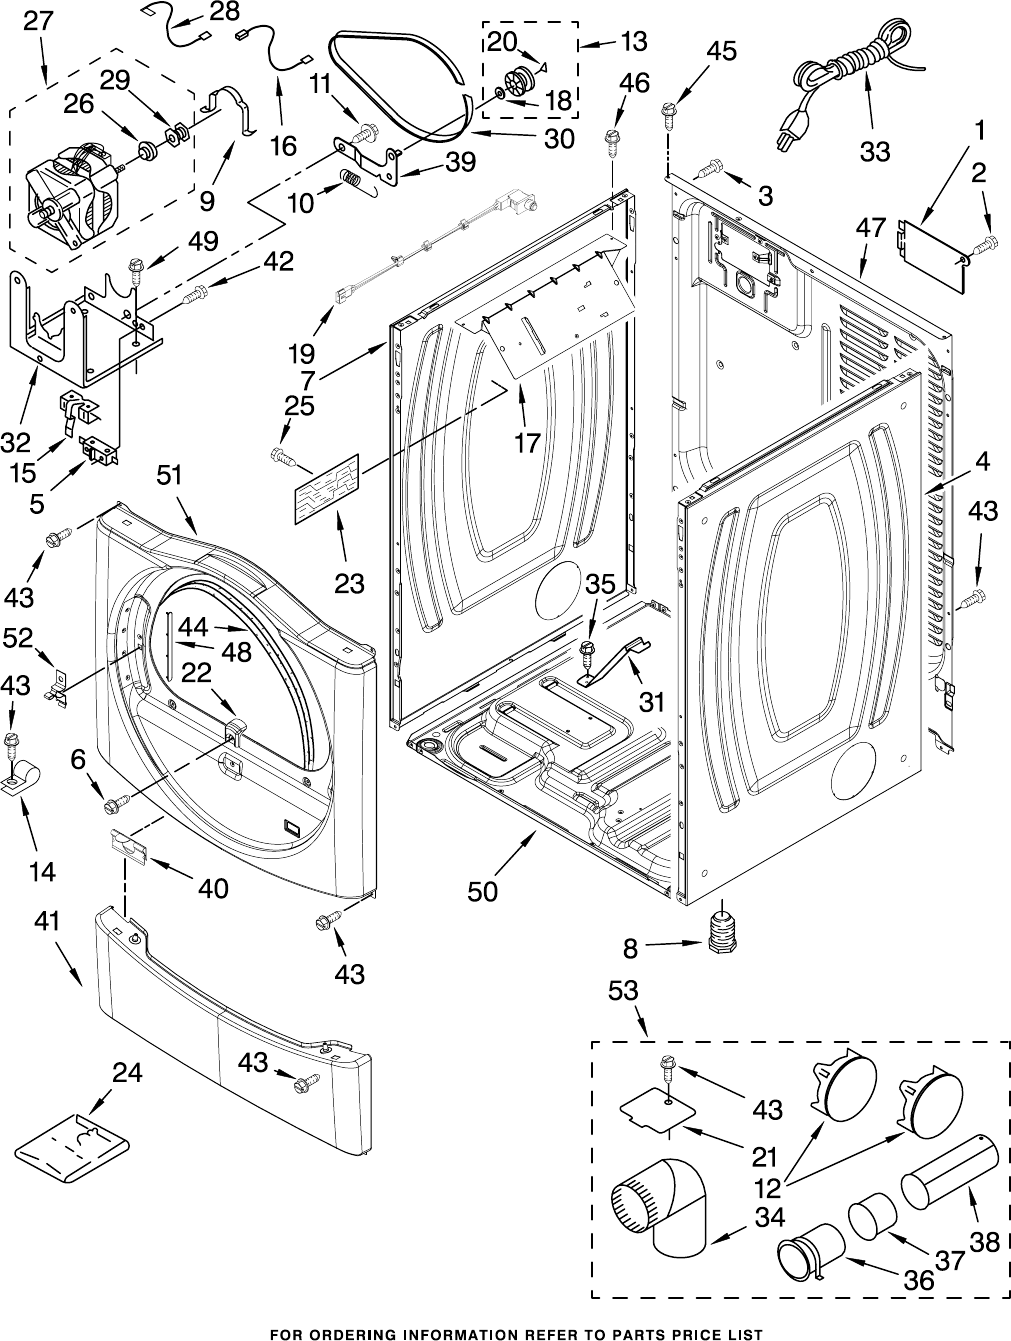 Page 3 of Whirlpool Clothes Dryer WGD8300SW1 User Guide